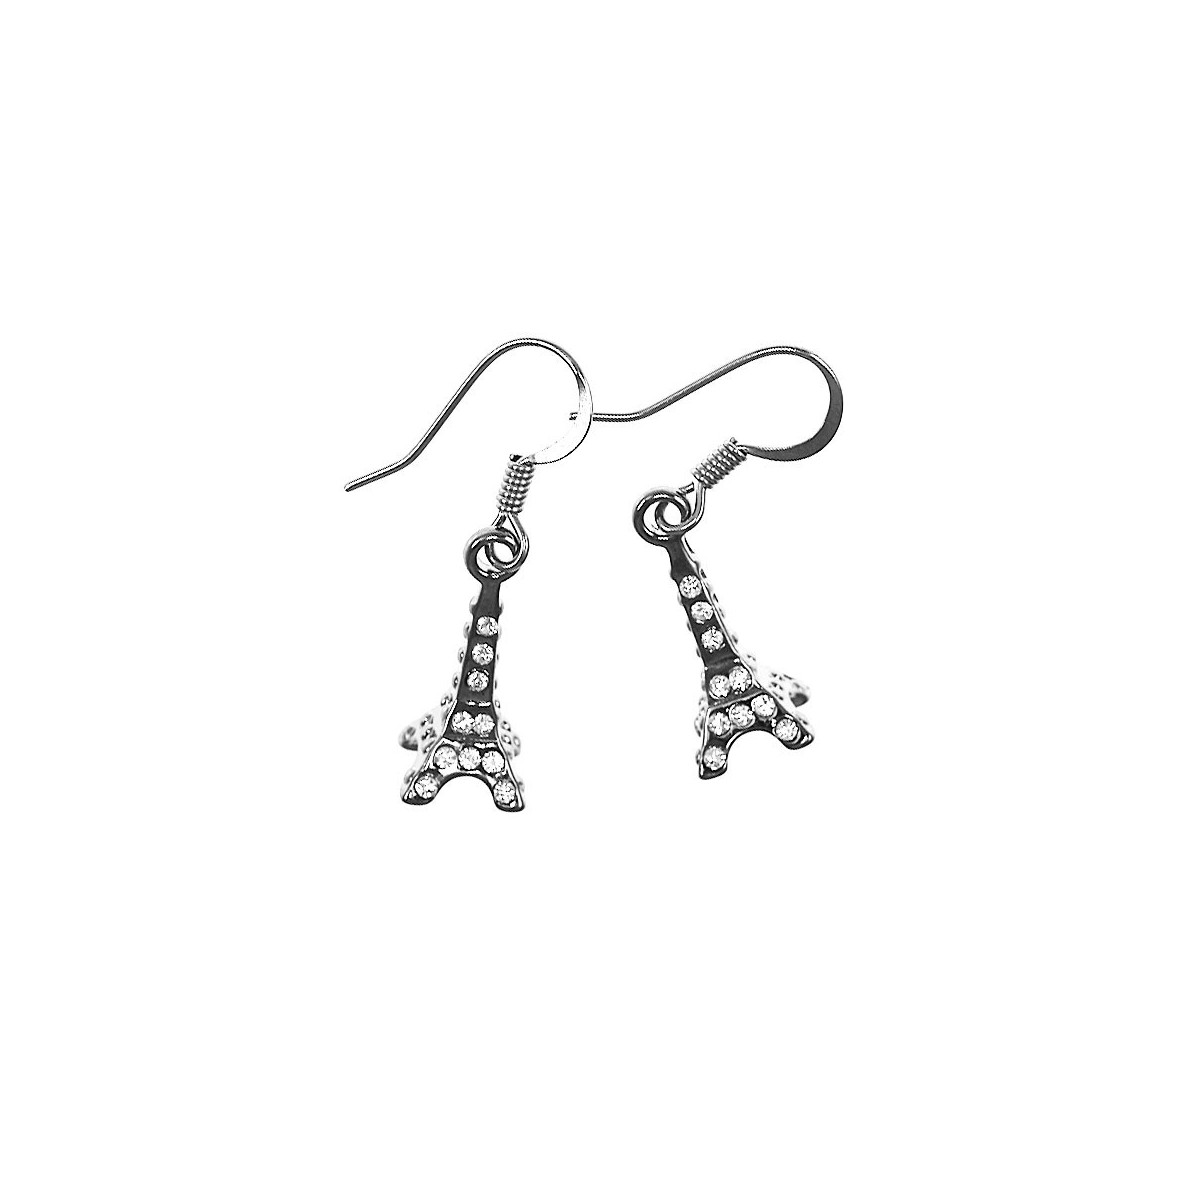 Boucles d'oreilles Tour Eiffel So Charm made with crystal from Swarovksi